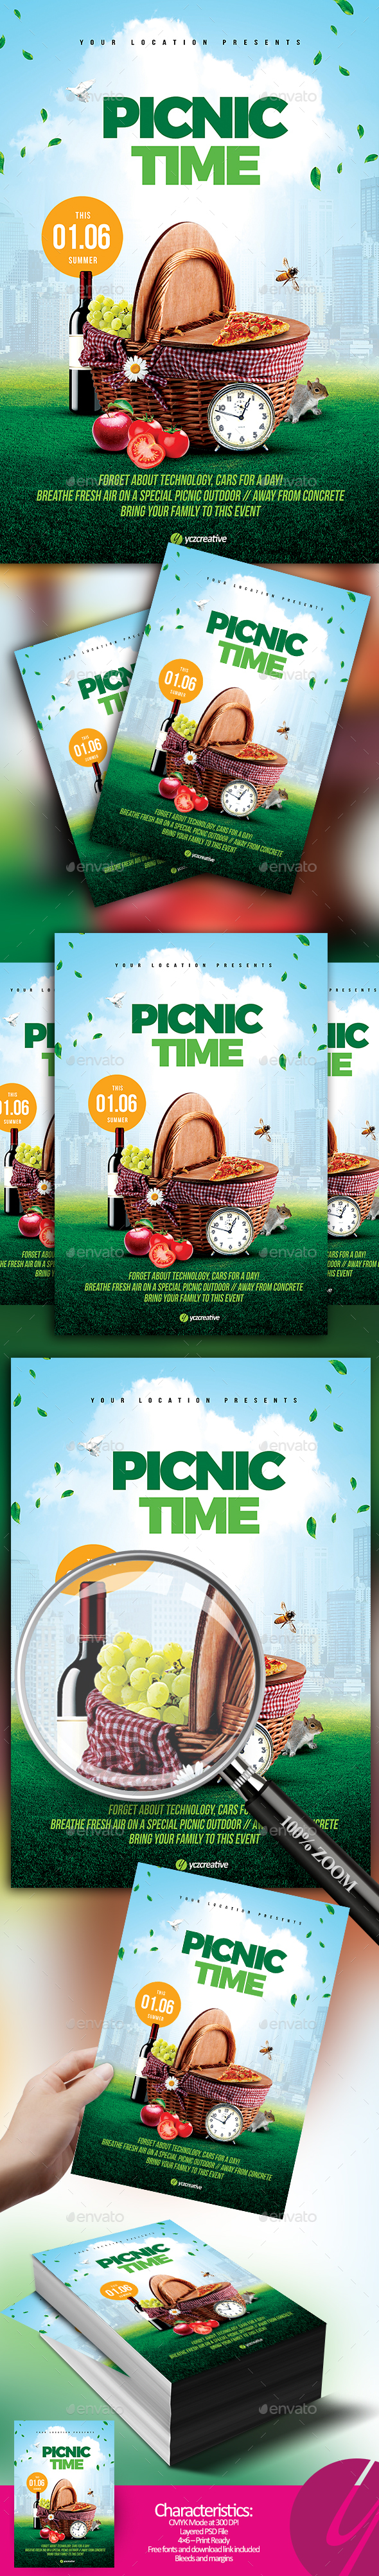 Picnic Time Flyer - Events Flyers